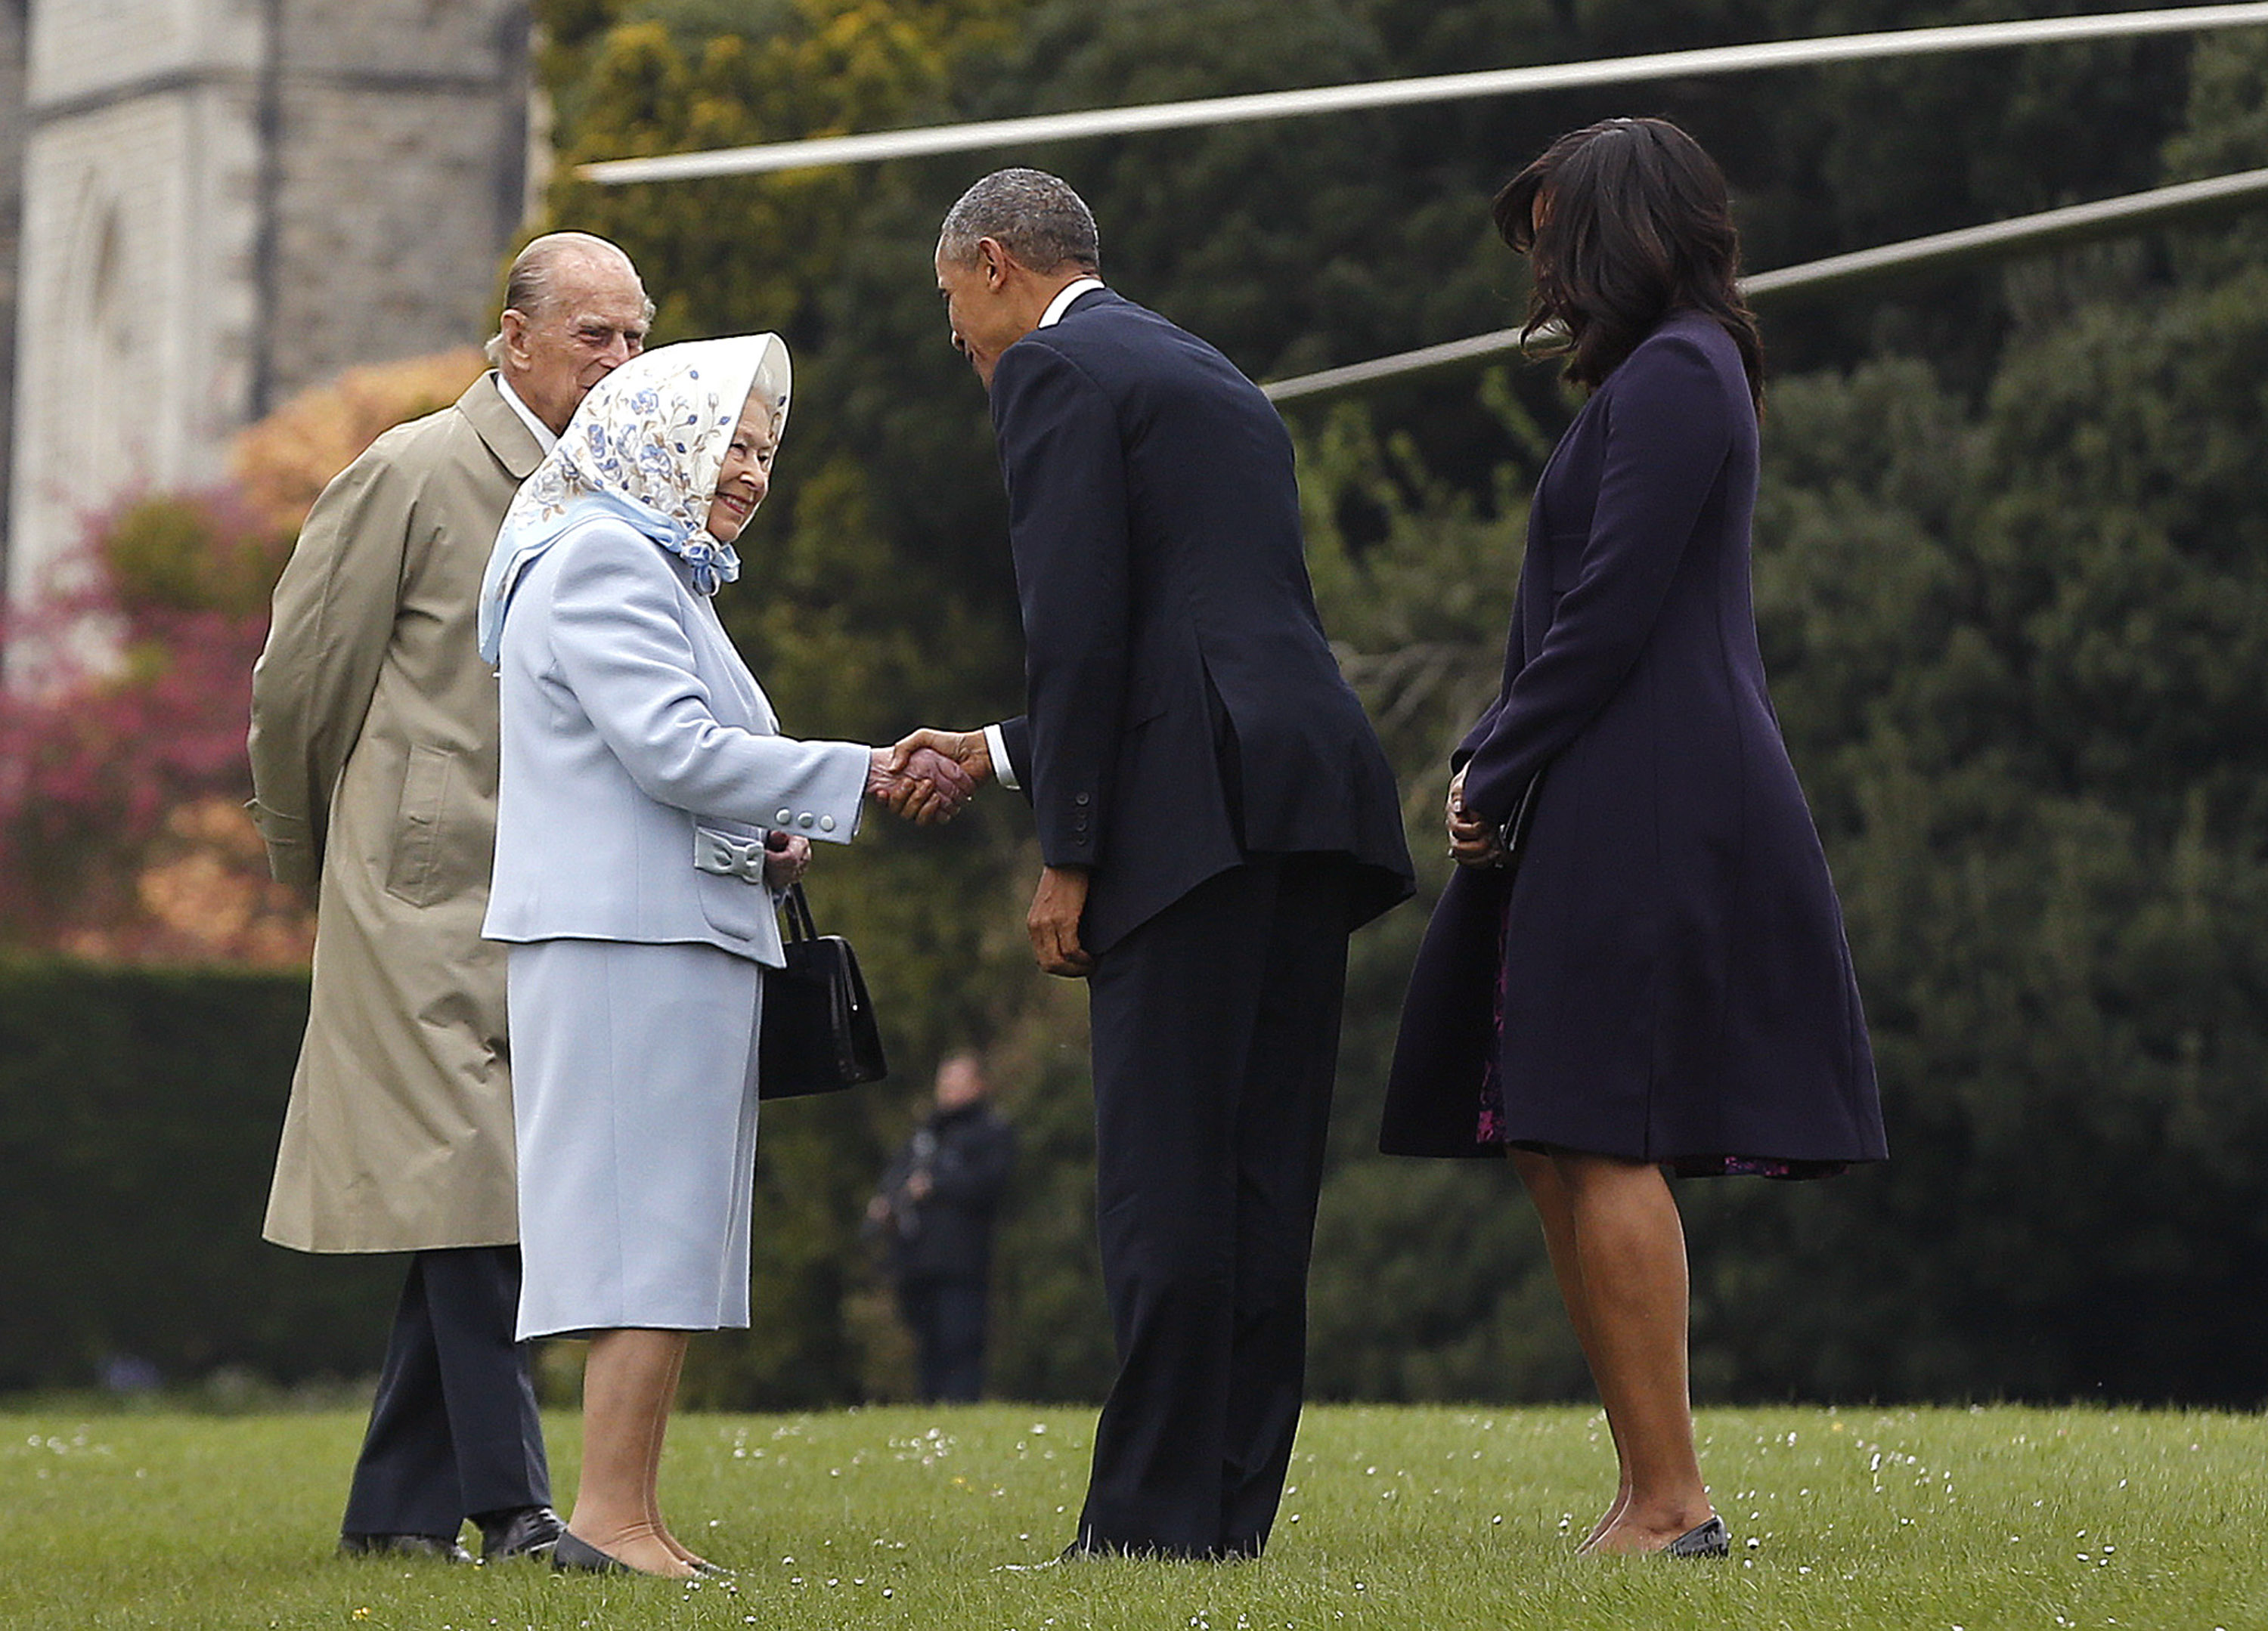 US President Barack Obama and his wife First Lady Michelle Obama are greeted by Queen Elizabeth II and Prince Phillip, Duke of Edinburgh after landing by helicopter at Windsor Castle for a private lunch on April 22, 2016.